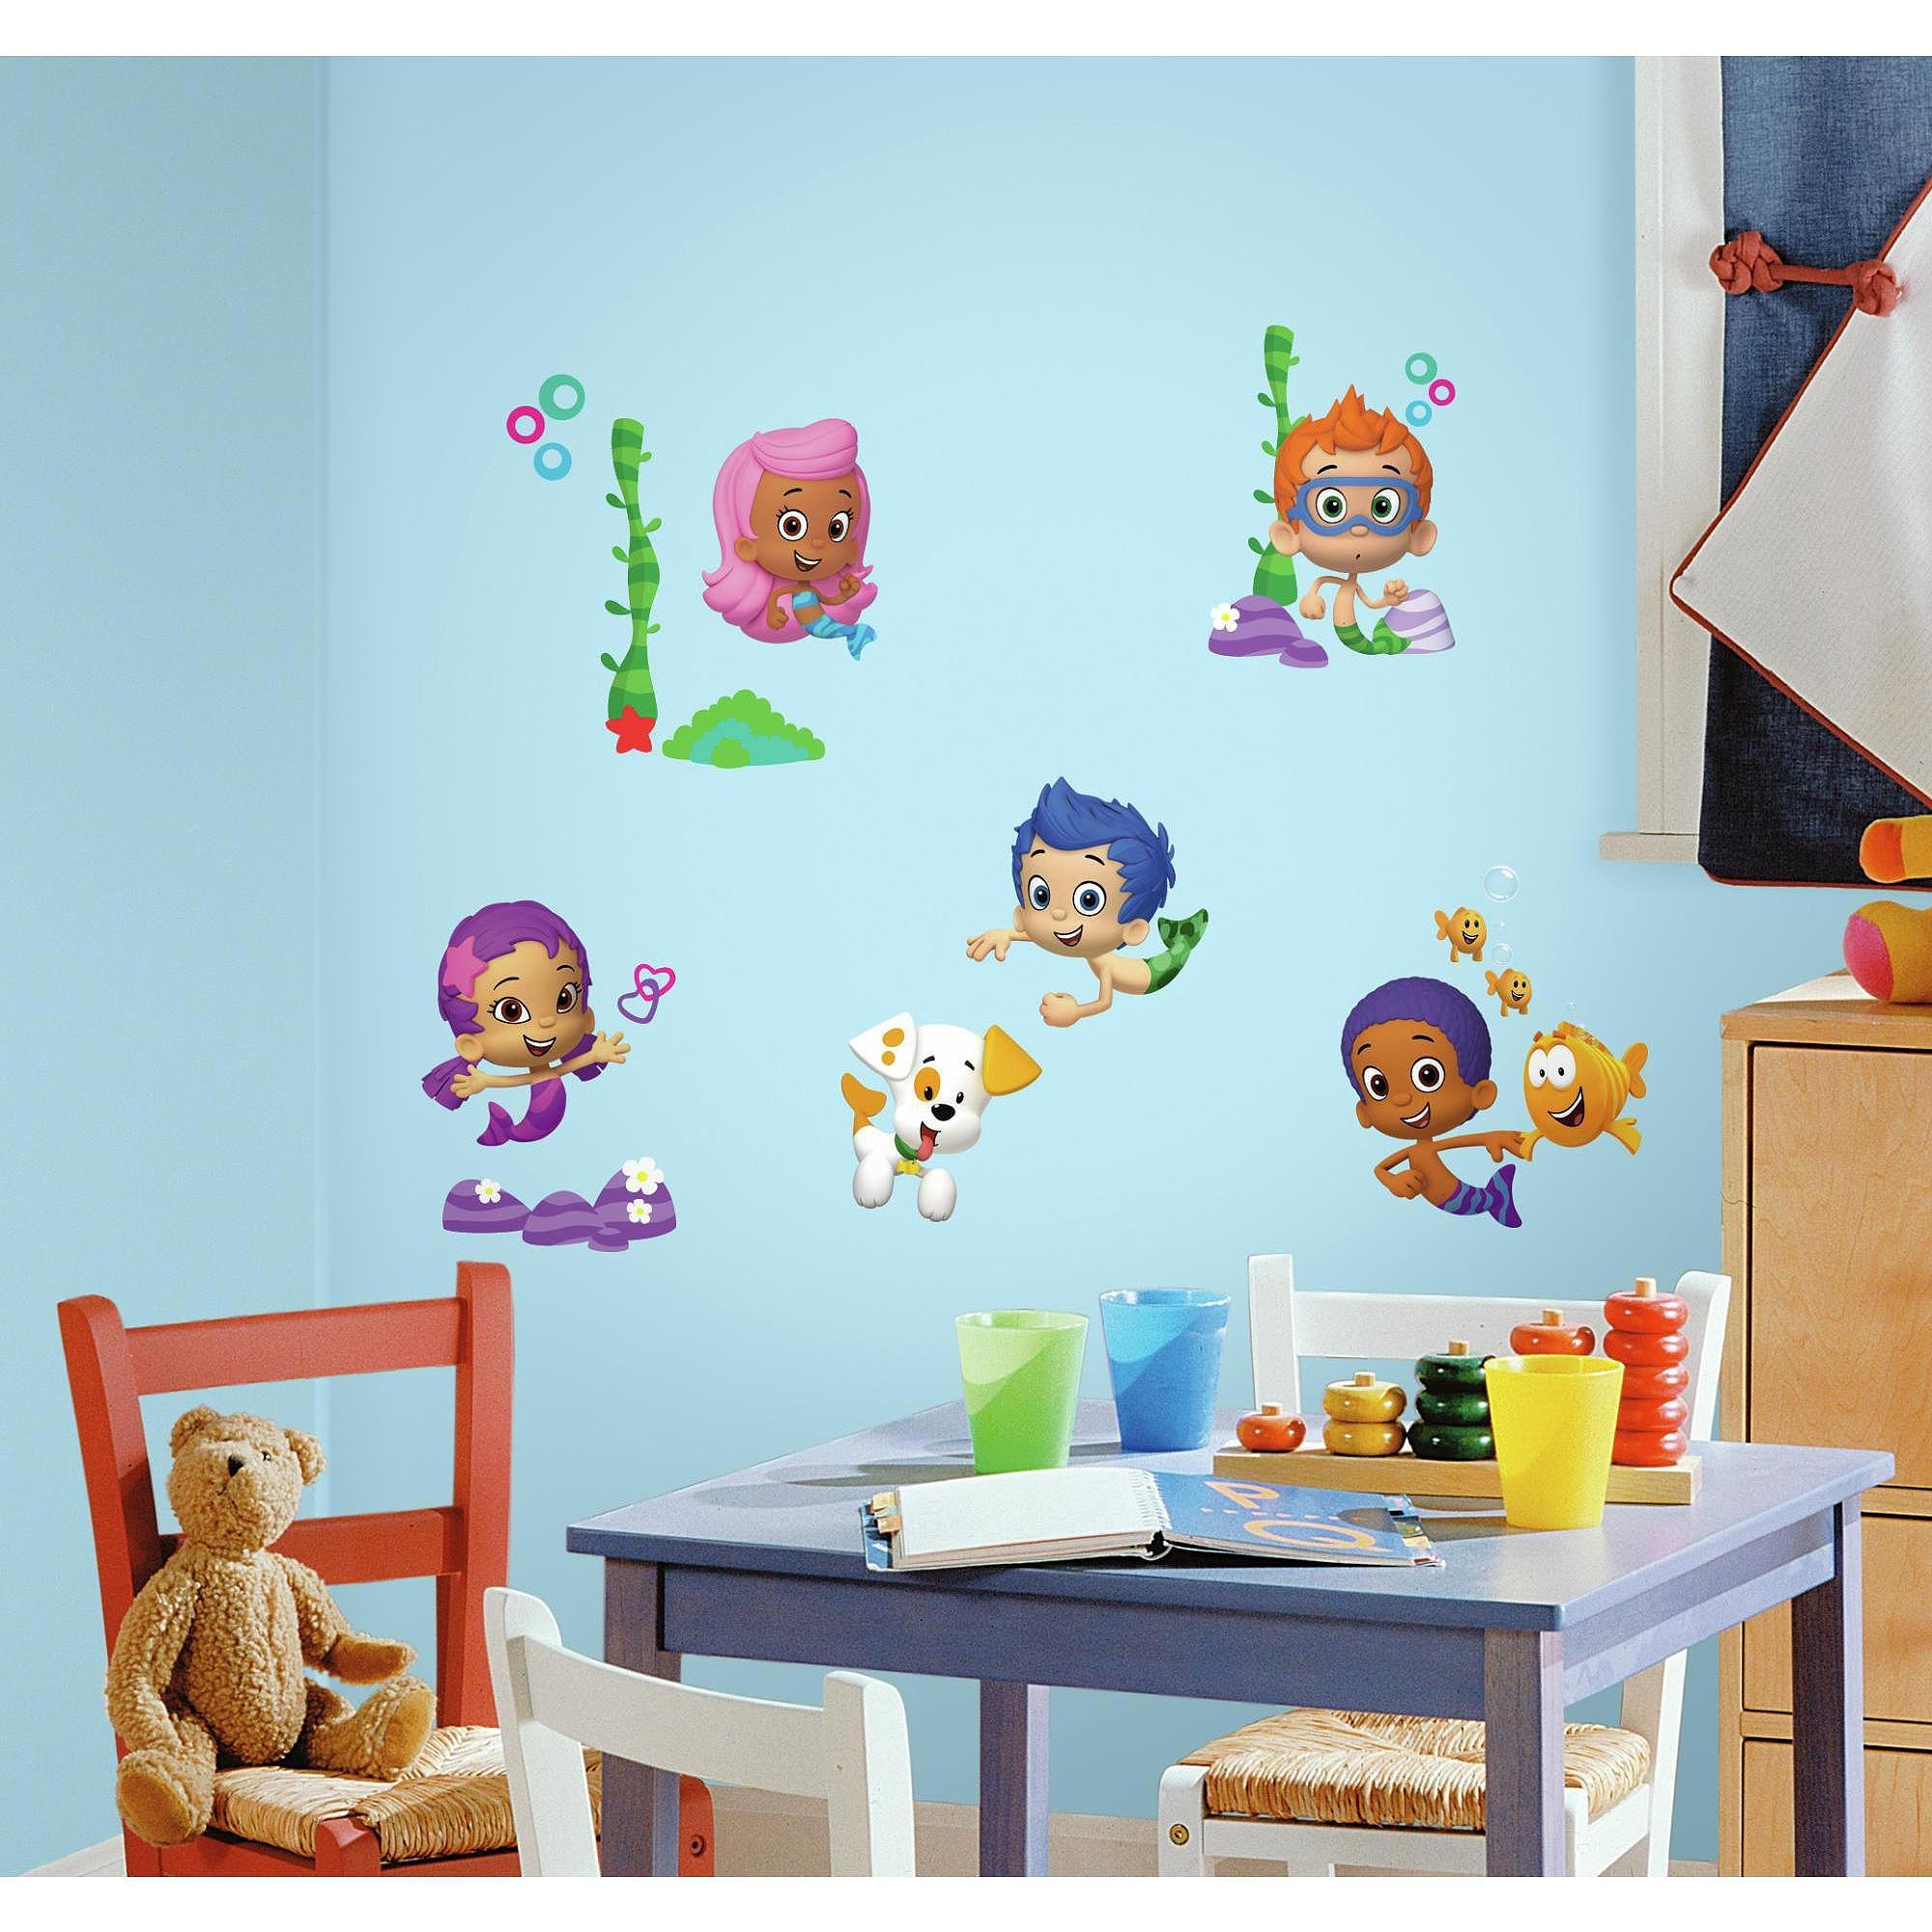 Bubble Guppies Peel And Stick Wall Decals – Walmart For Walmart Wall Stickers (Image 3 of 20)